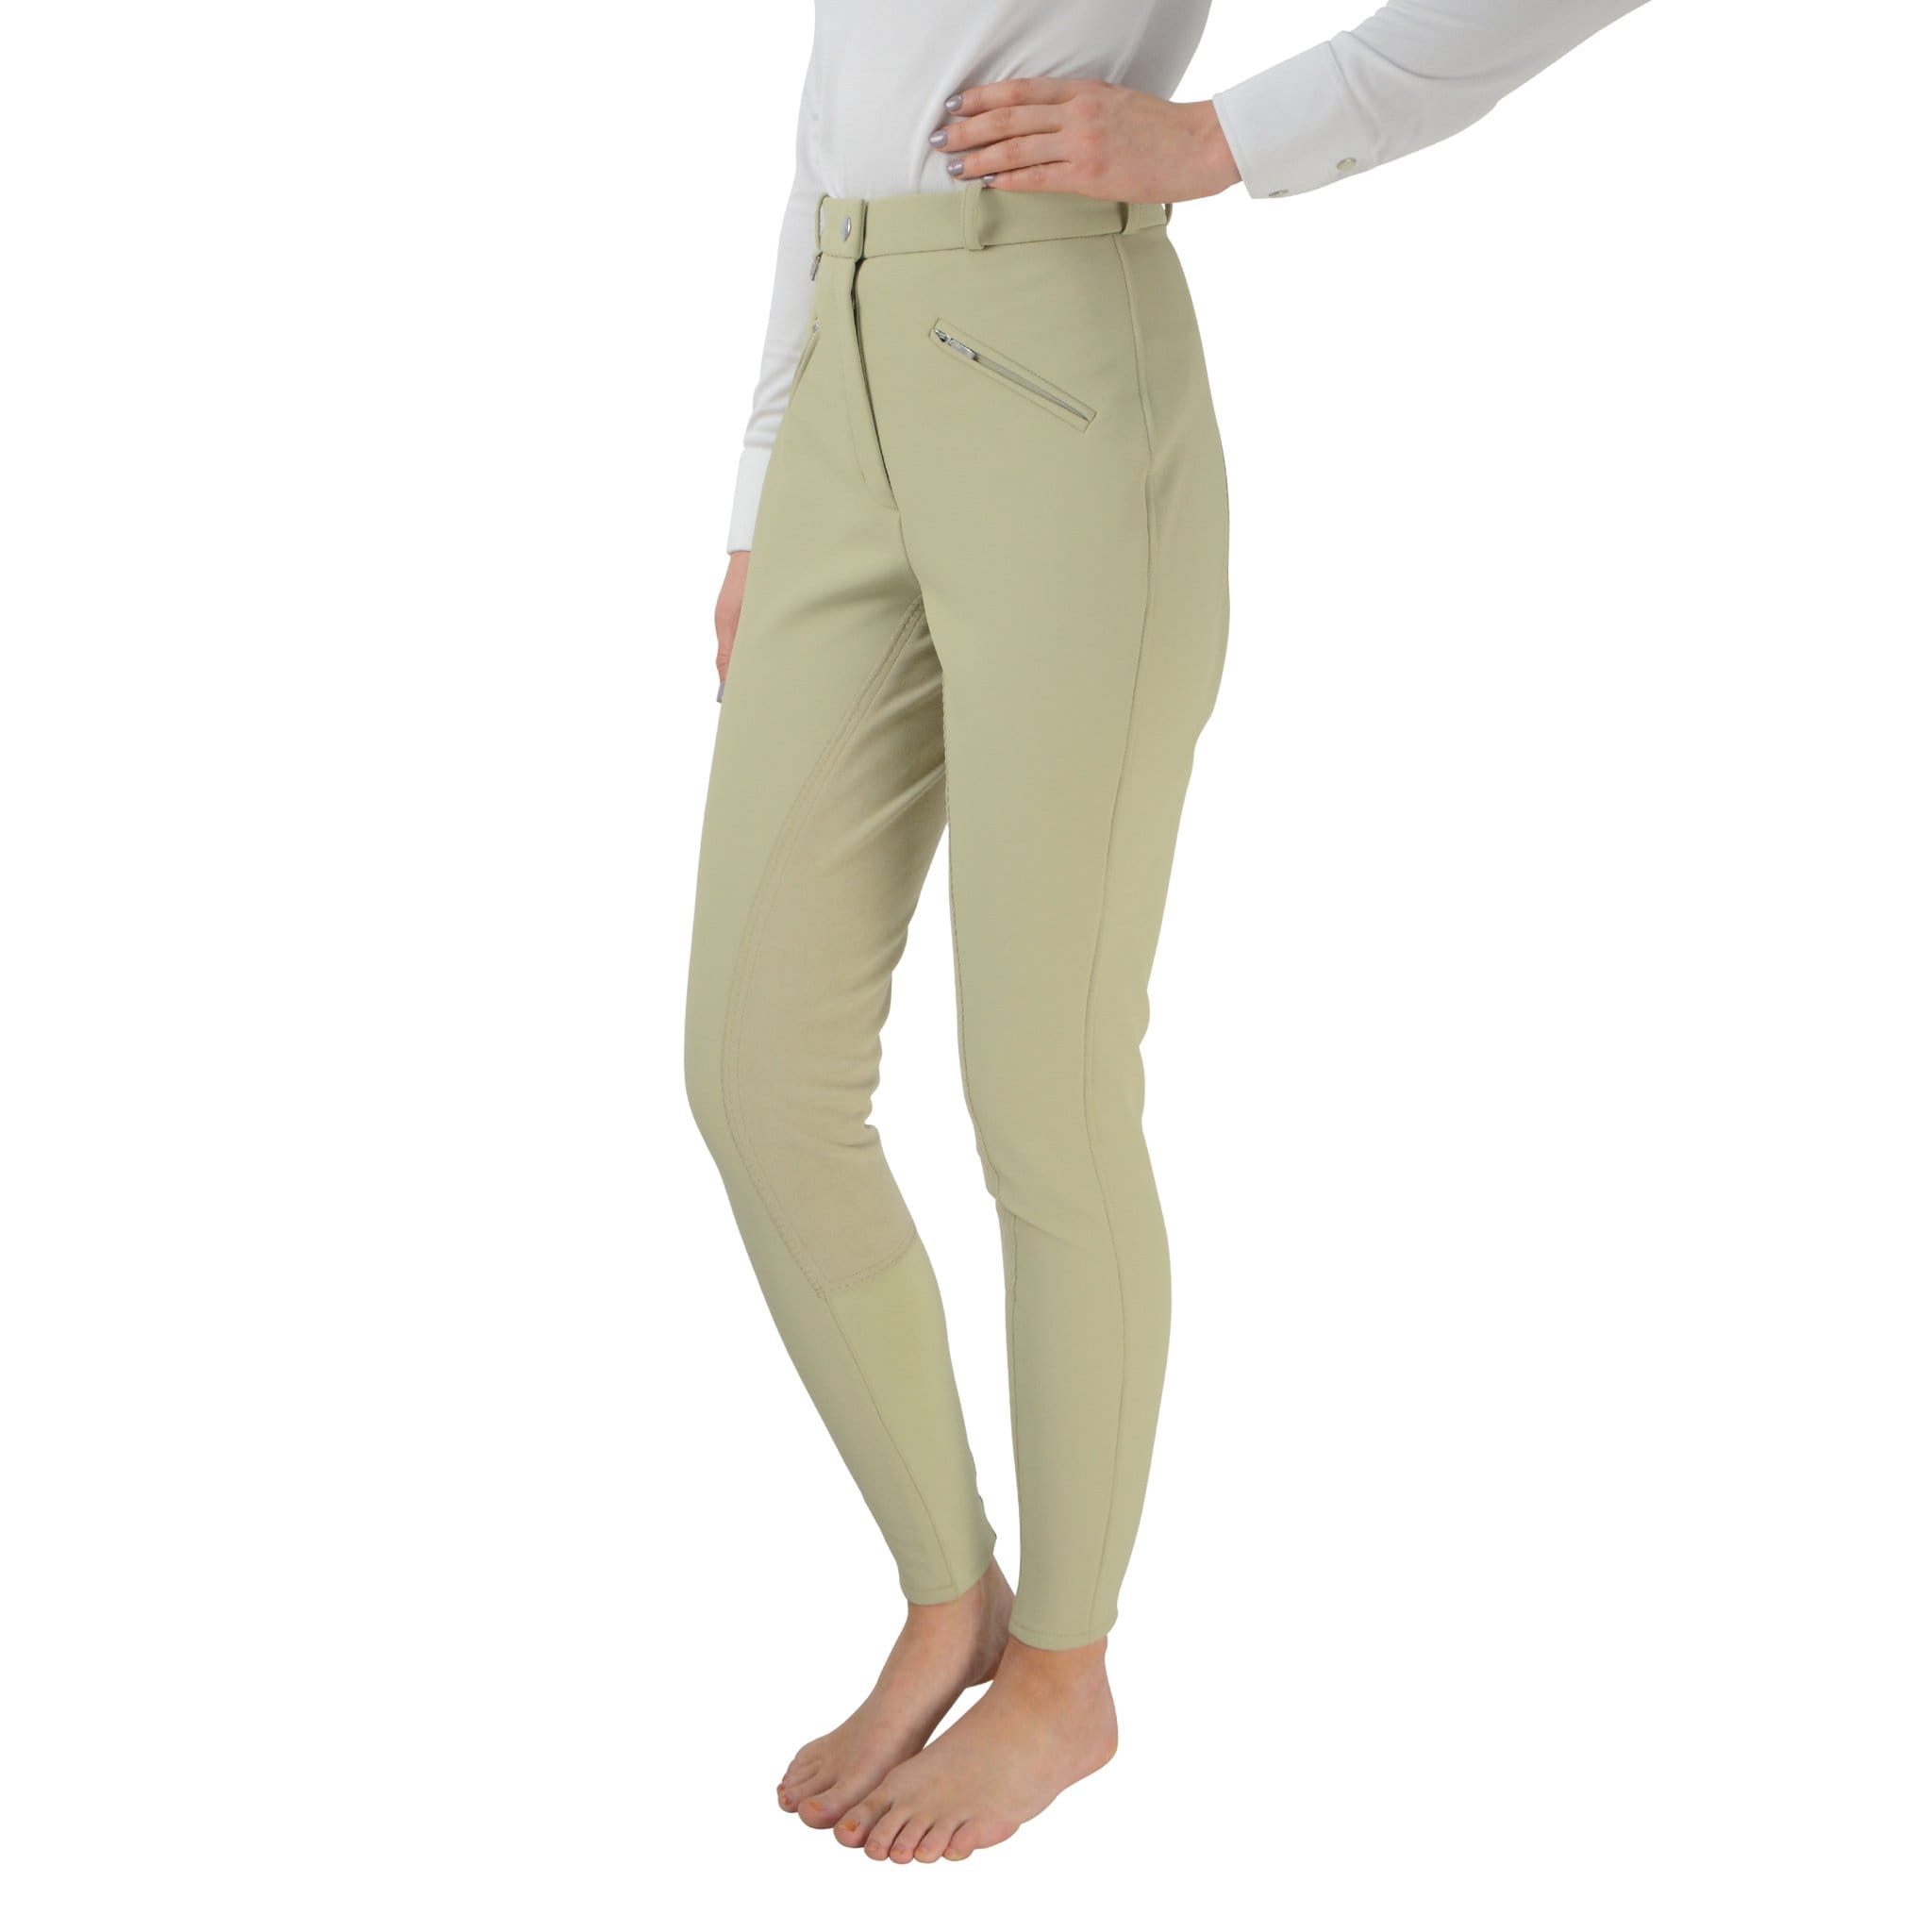 HyPerformance Winter Softshell Alos Full Seat Breeches Beige Front On Model 4570